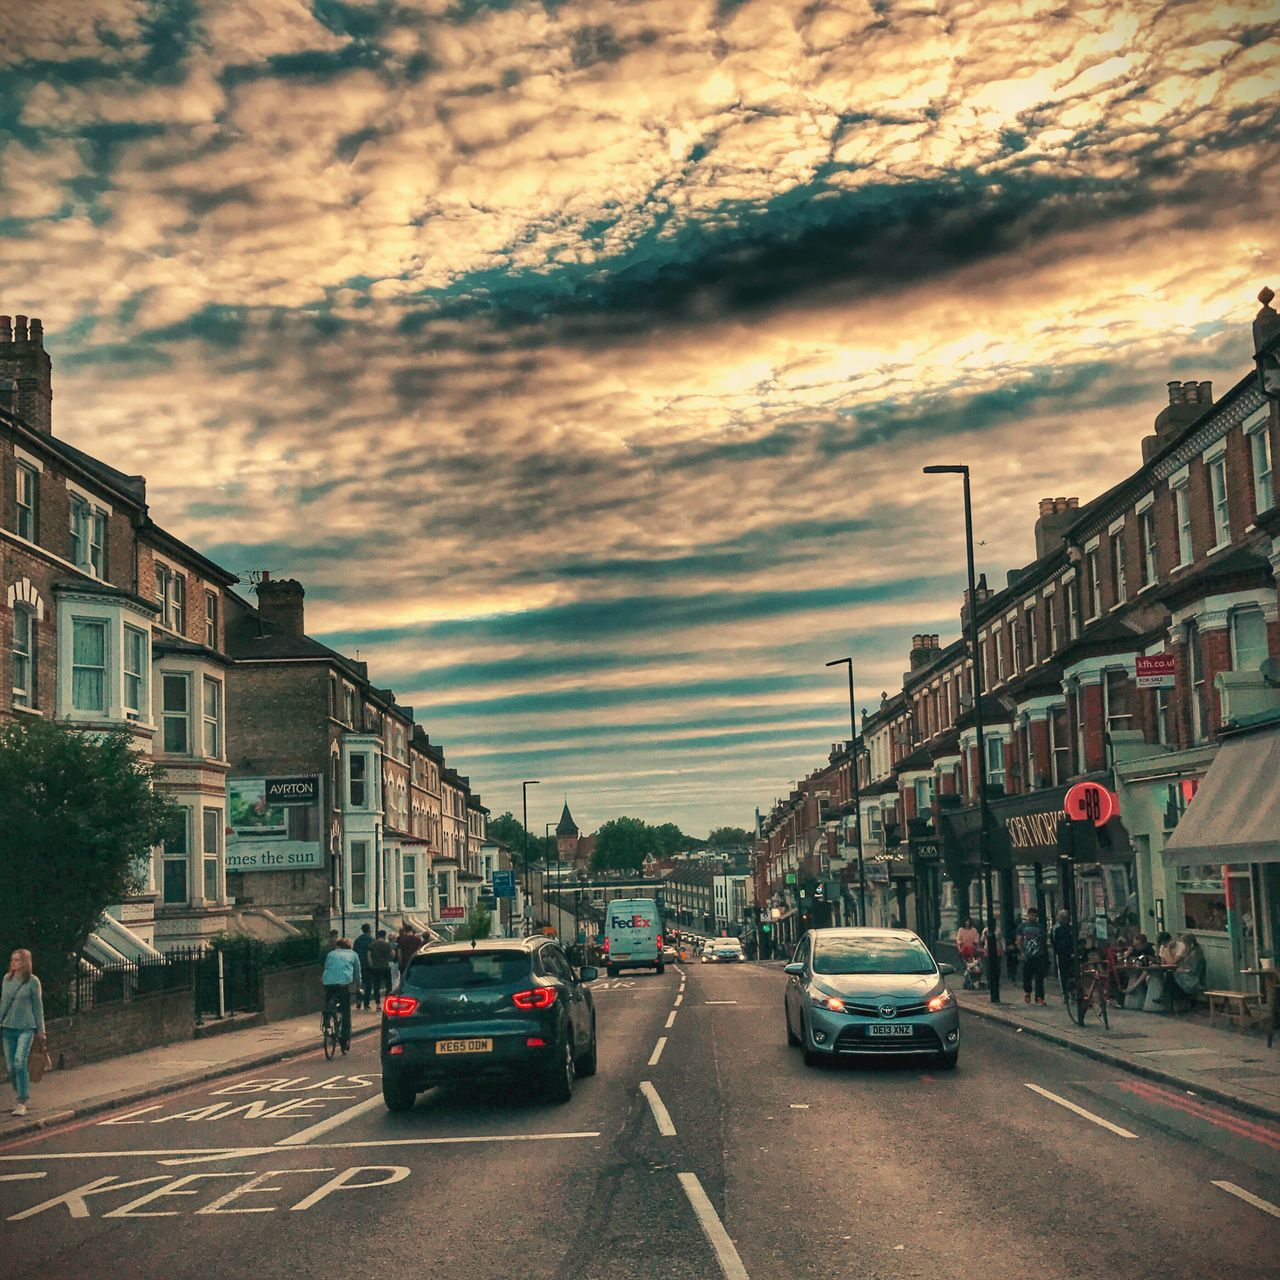 car, street, architecture, land vehicle, transportation, city, building exterior, road, sky, built structure, cloud - sky, mode of transport, outdoors, sunset, no people, day